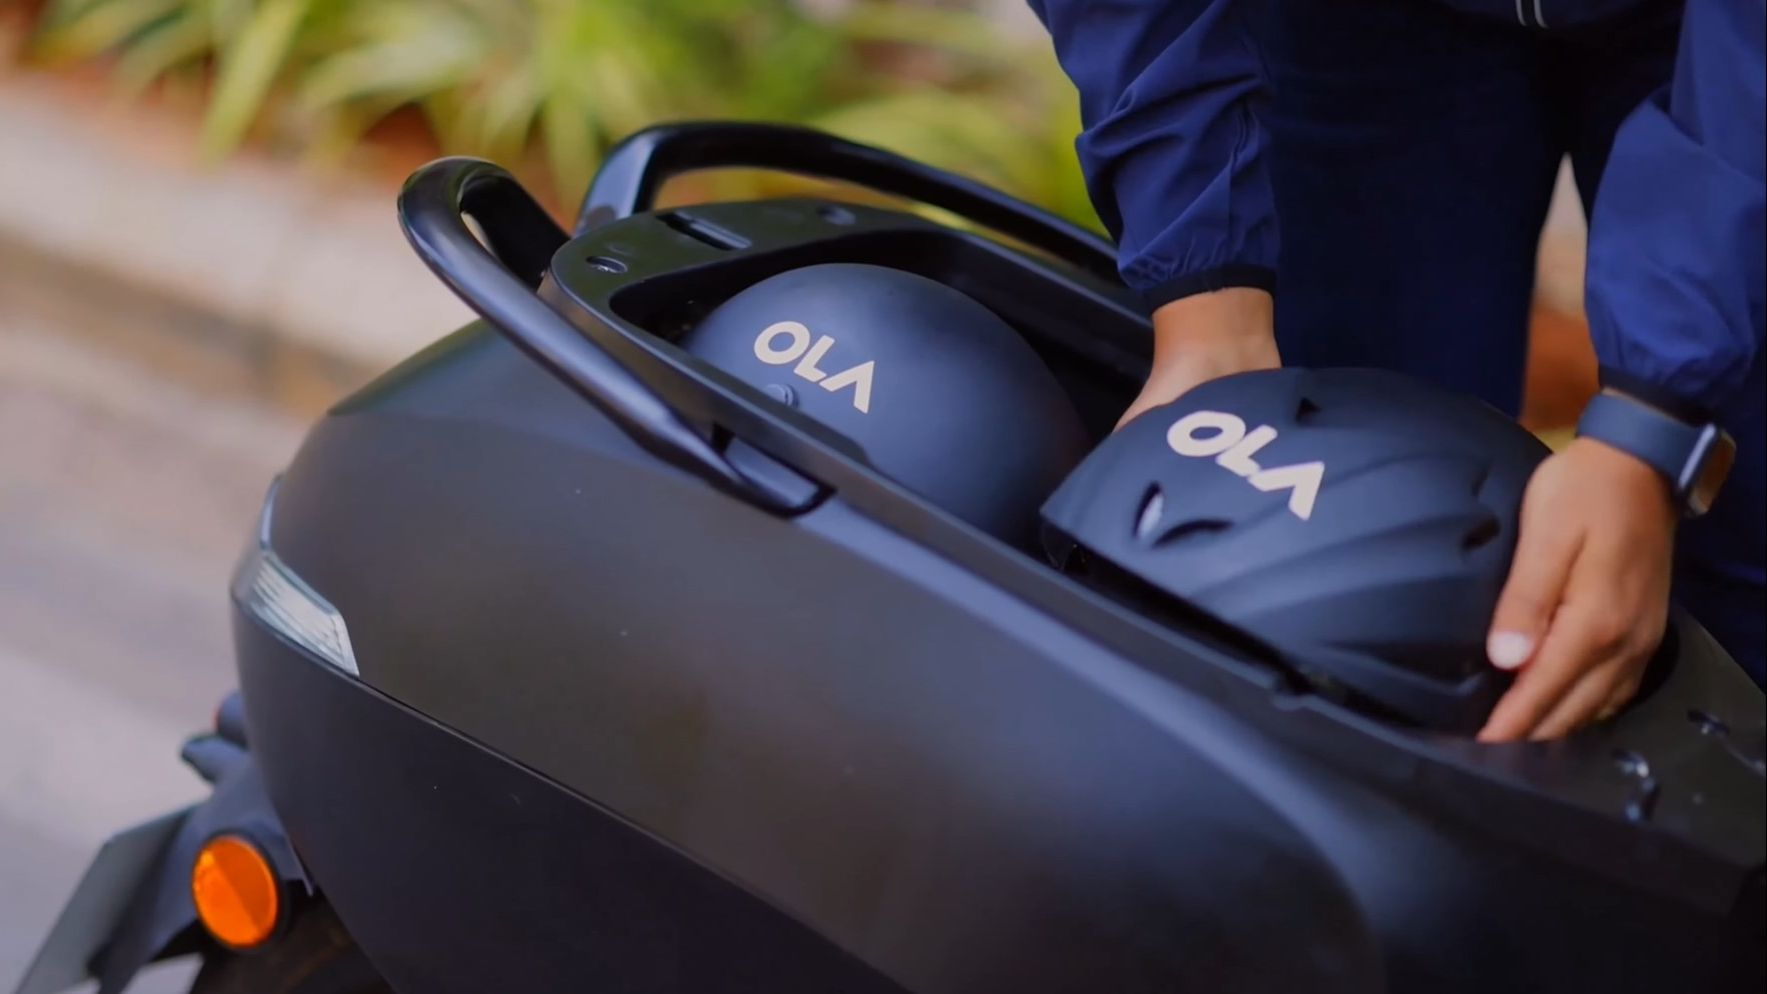 The Ola electric scooter can store two half-face helmets in its under-seat storage bay. Image: Ola Electric